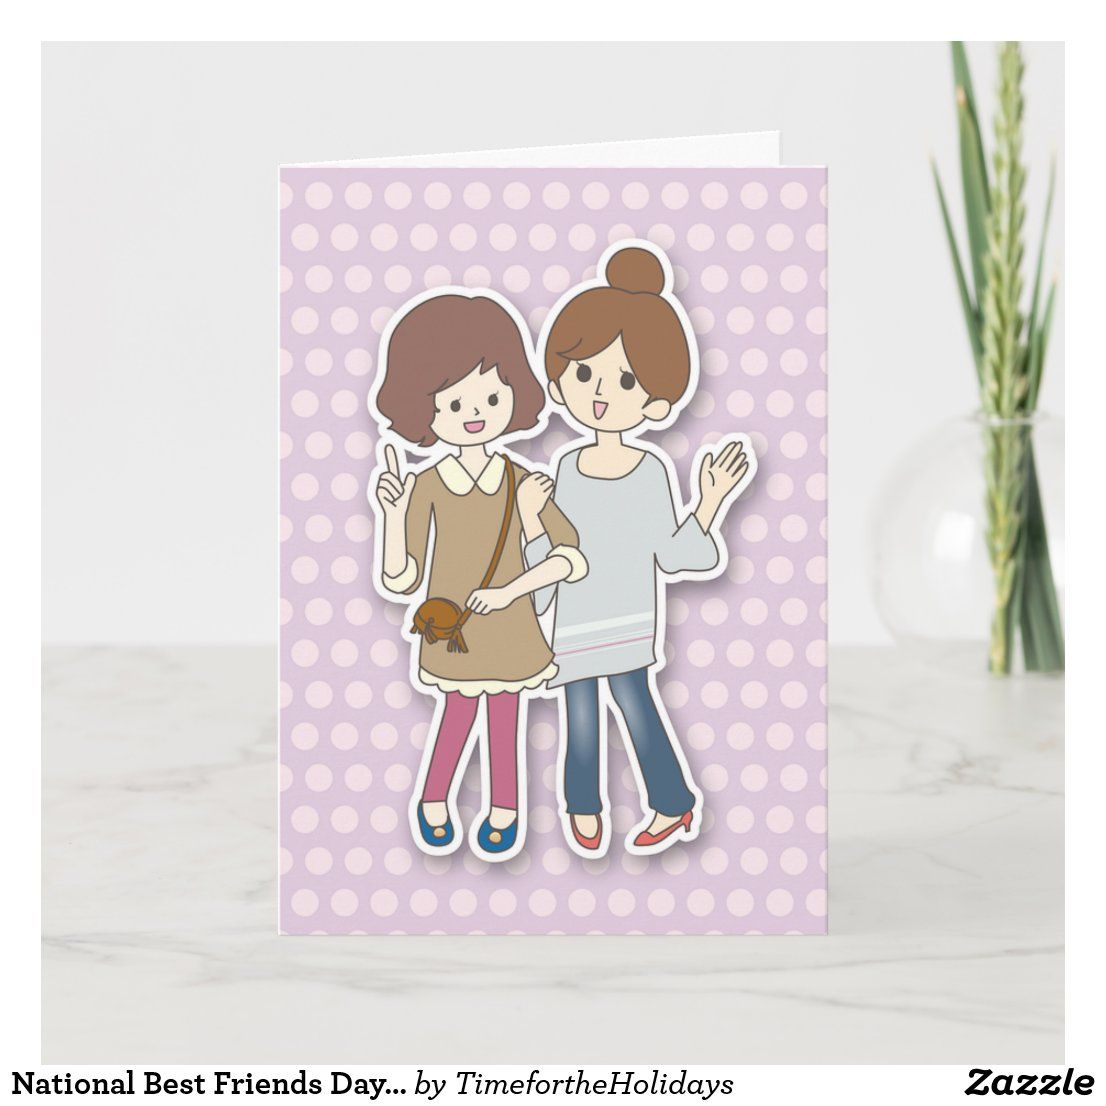 National Best Friends Day August 15th Card Zazzle Com In 2020 Best Friend Day National Best Friend Day Best Friend Cards